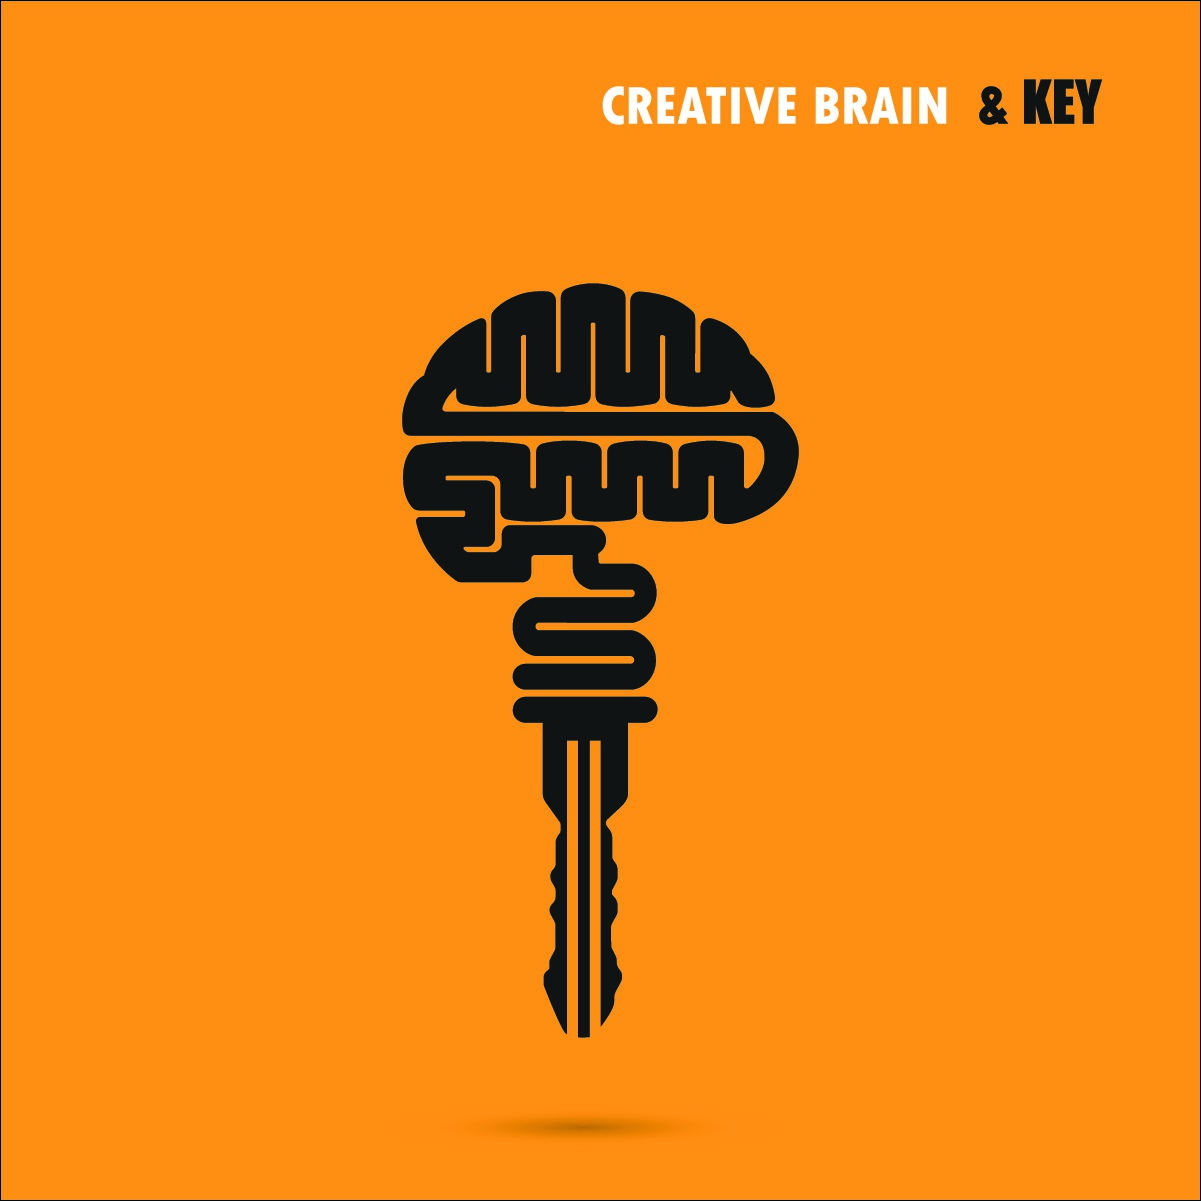 bigstock-Creative-Brain-Sign-With-Key-S-117854132